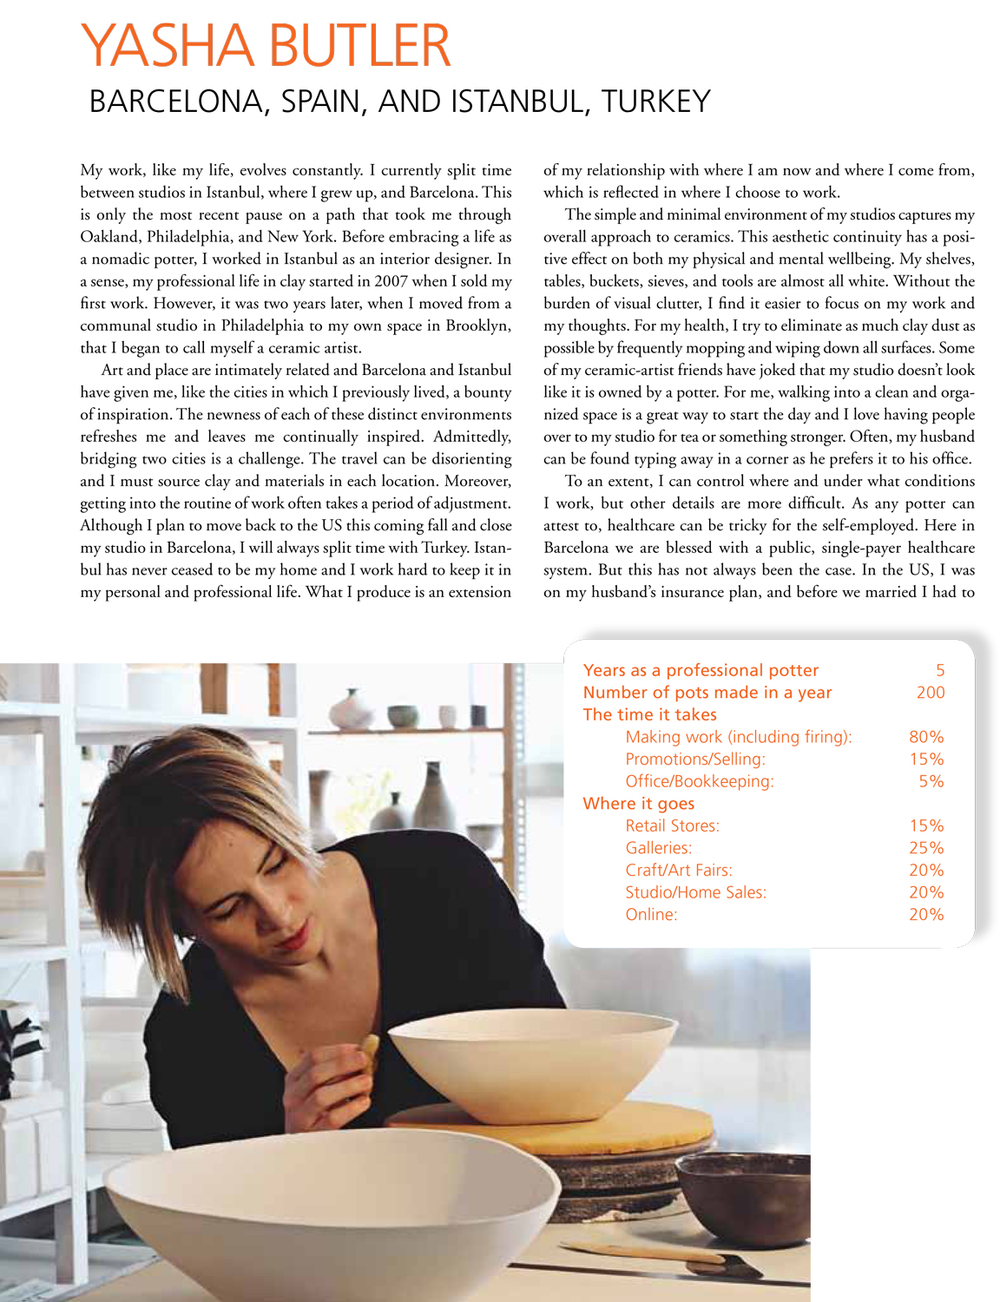 YashaButler_CeramicsMonthly_June2014_1_WEB.jpg